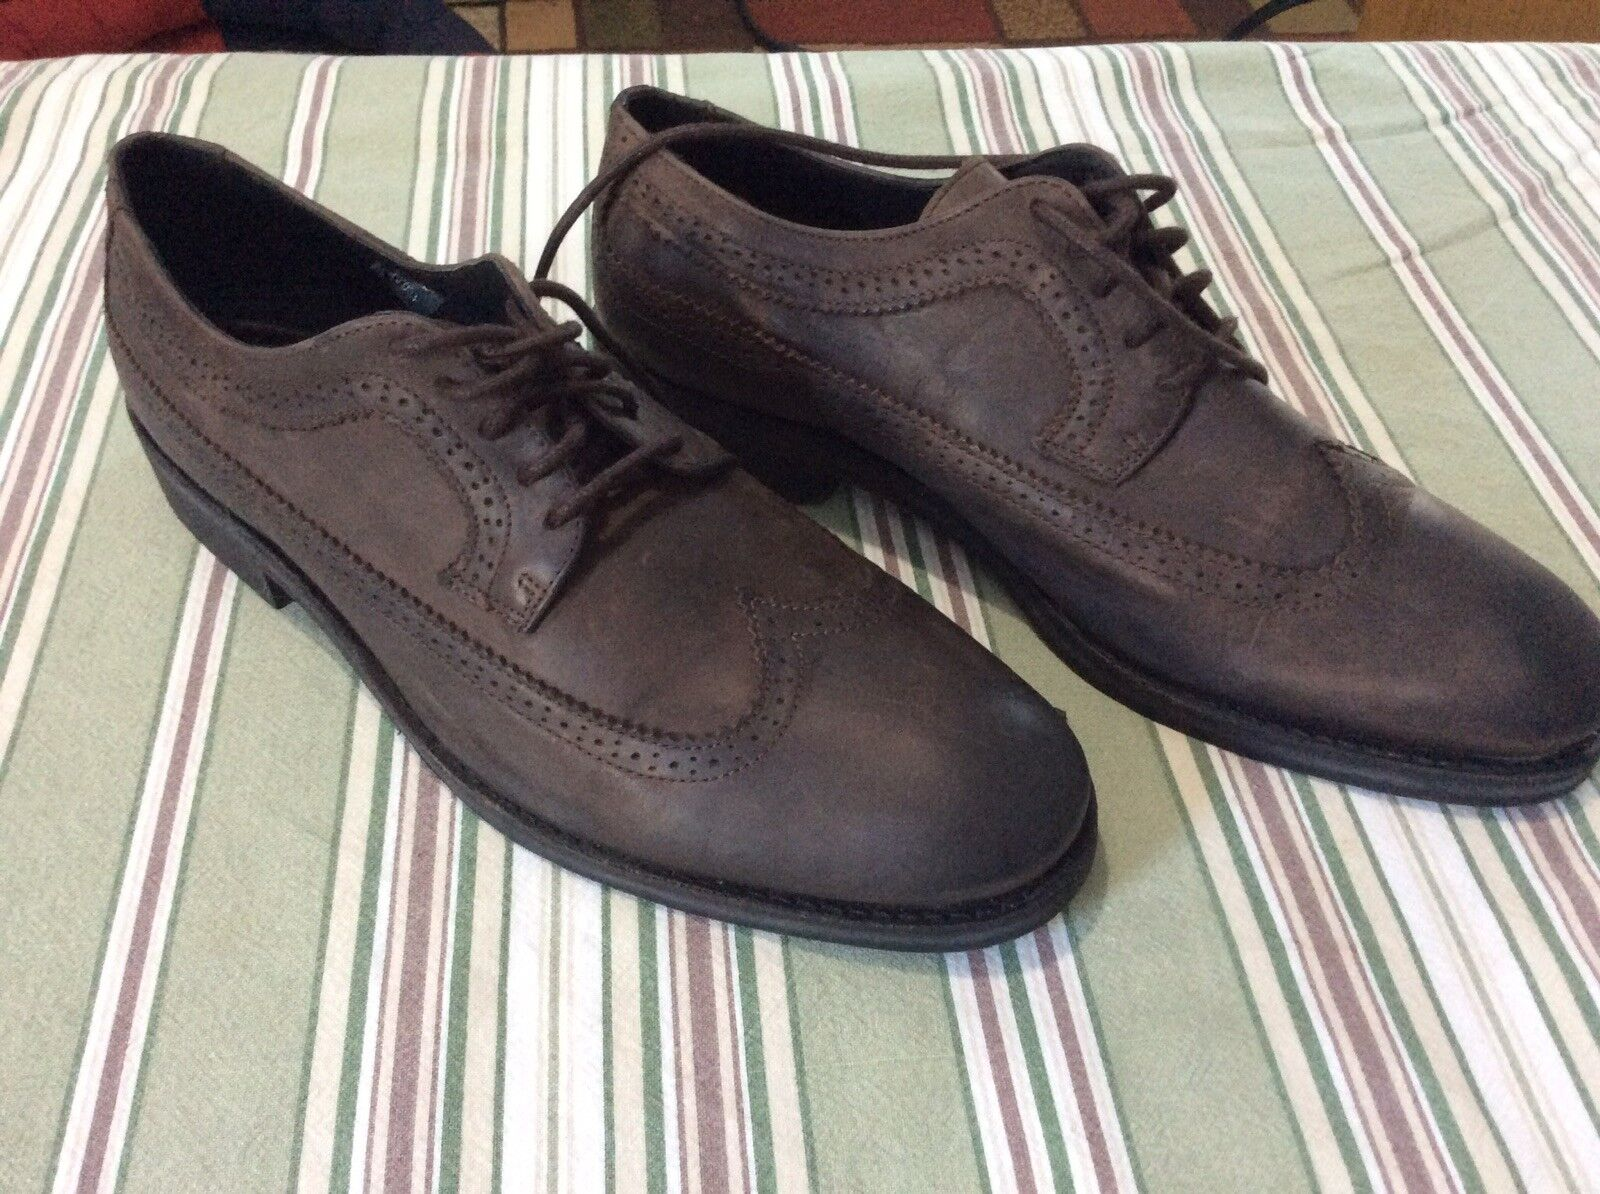 BRUSQUE Brown oiled leather wingtip rubber sole dress shoes 12